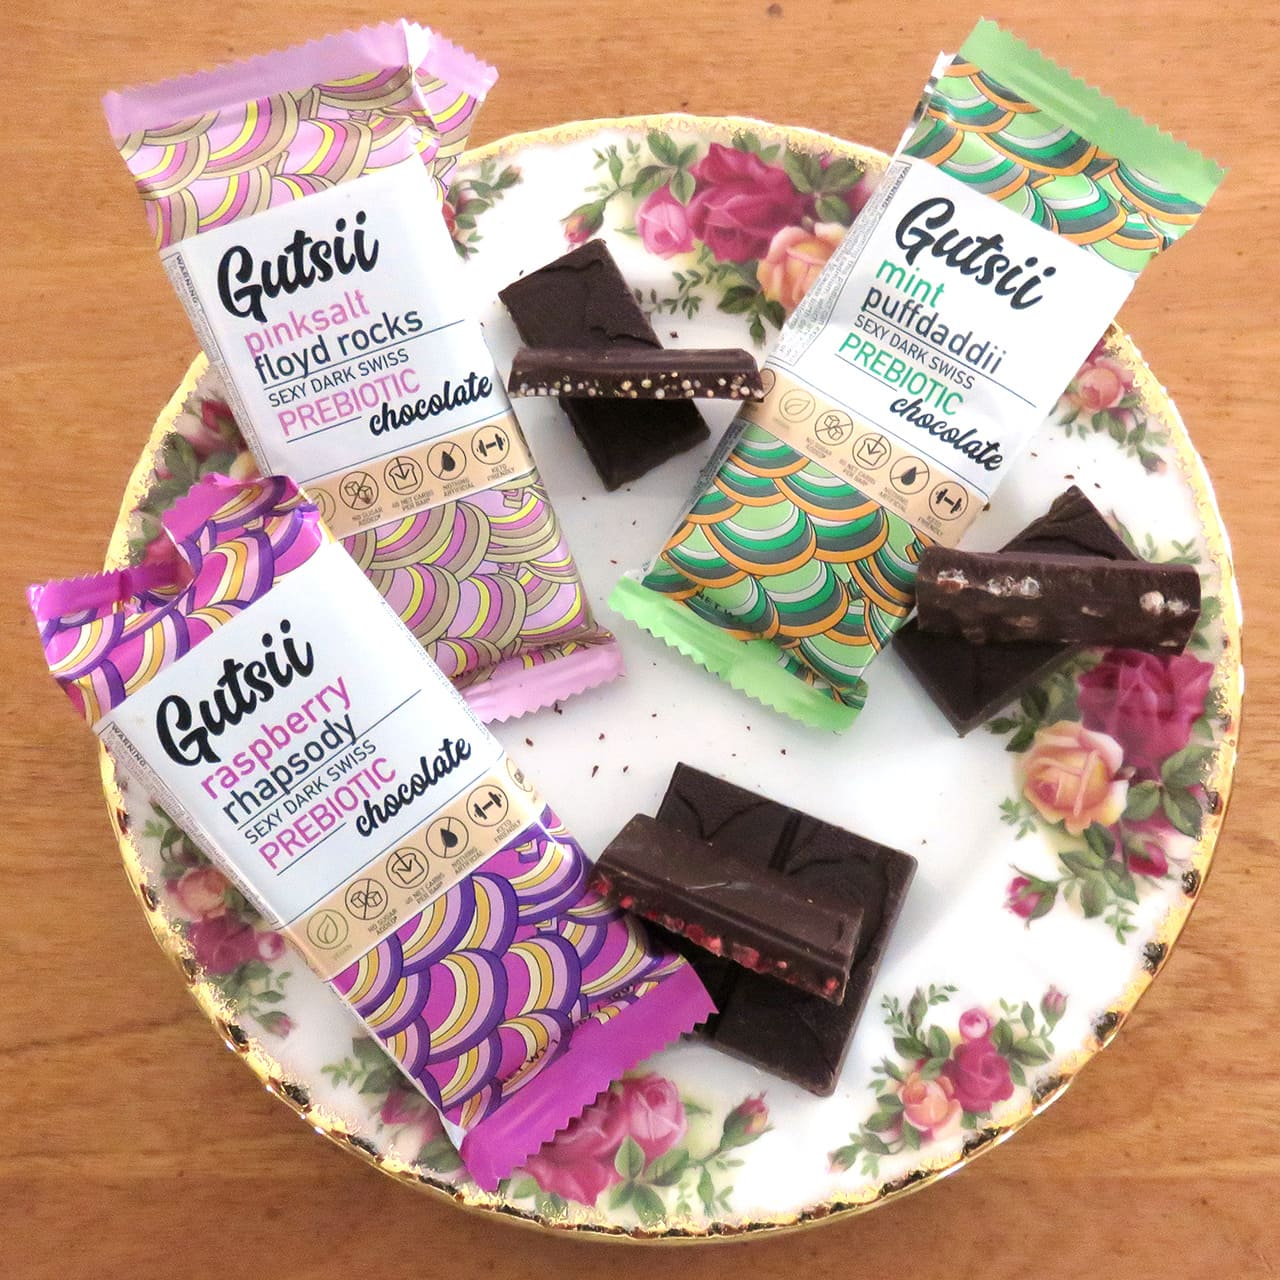 Gutsii Chocolate with Prebiotics Review: Vegan, Keto-Friendly, Low Carb Swiss Dark Chocolate